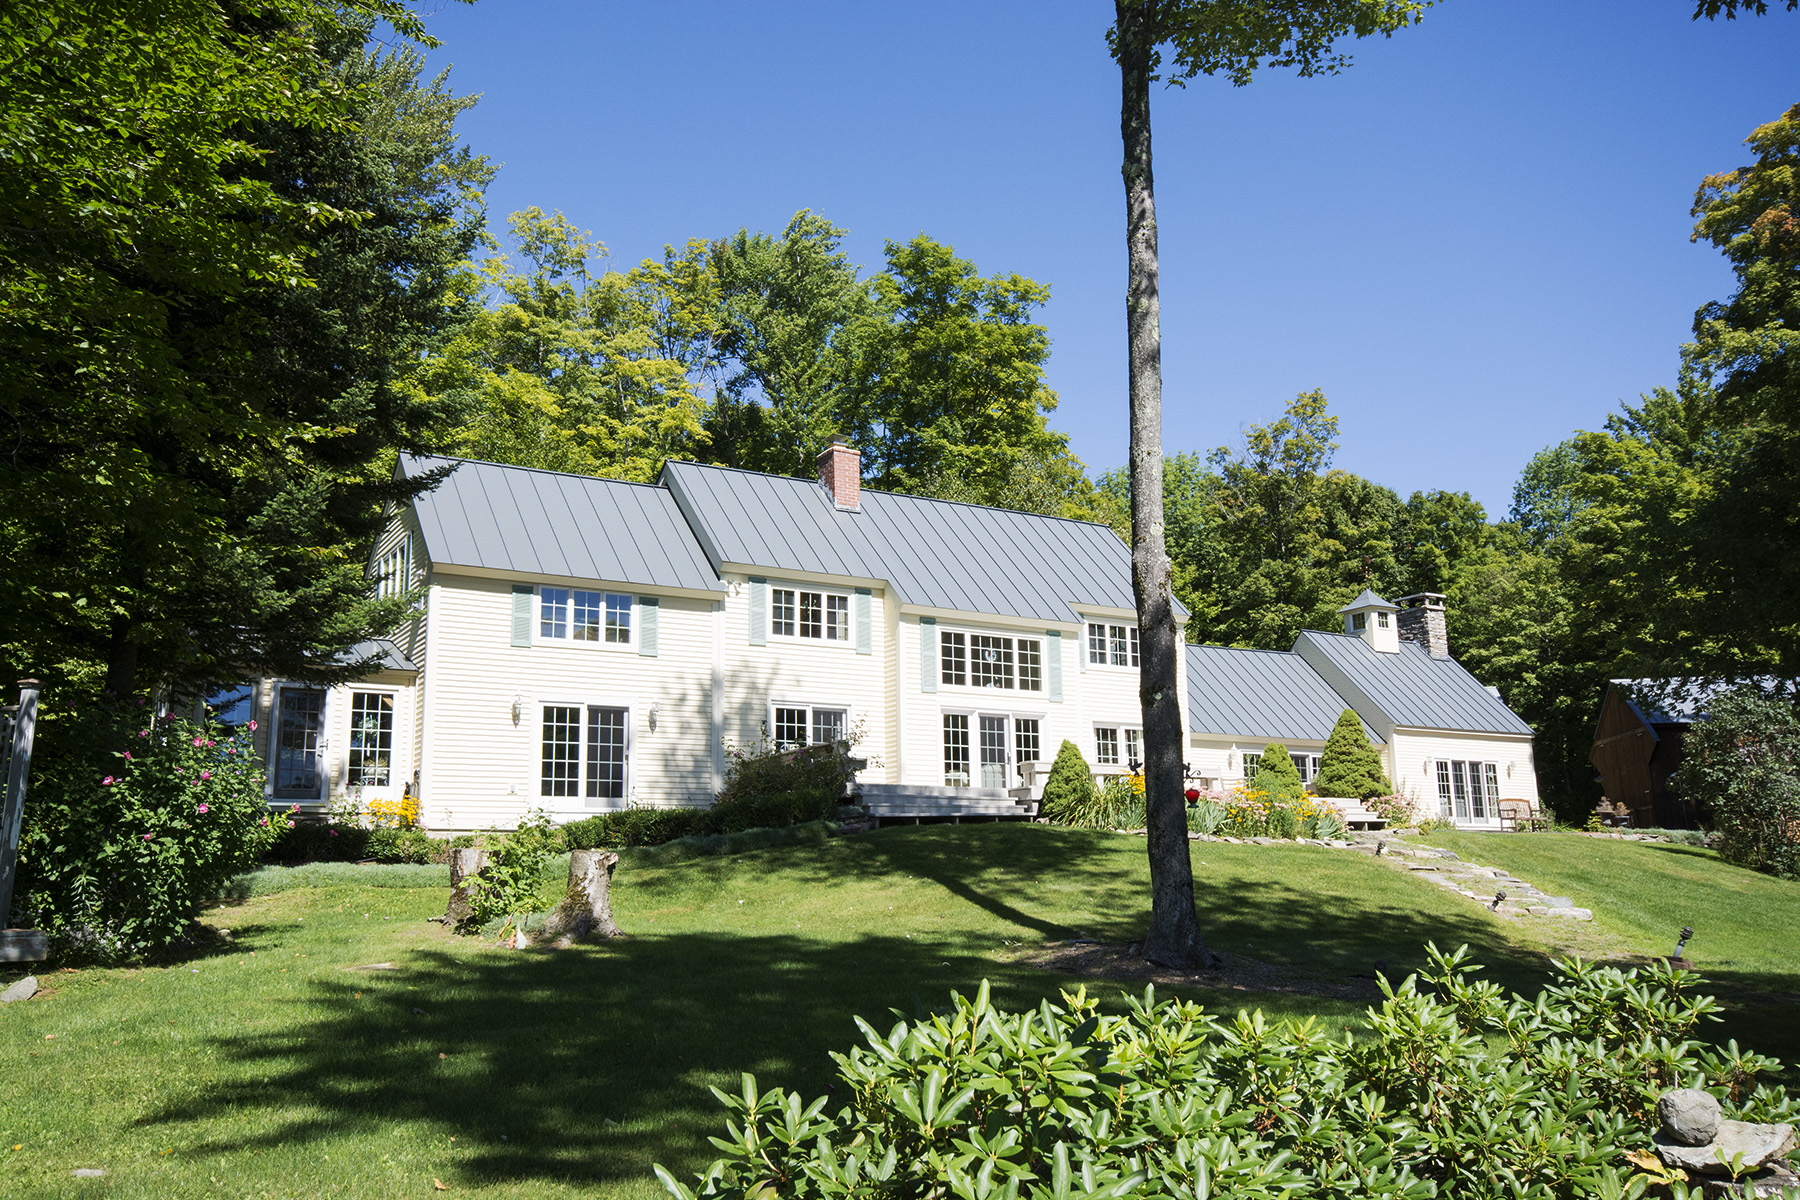 Single Family Home for Sale at Peaceful View 563 Spruce Hill Rd Londonderry, Vermont, 05148 United States